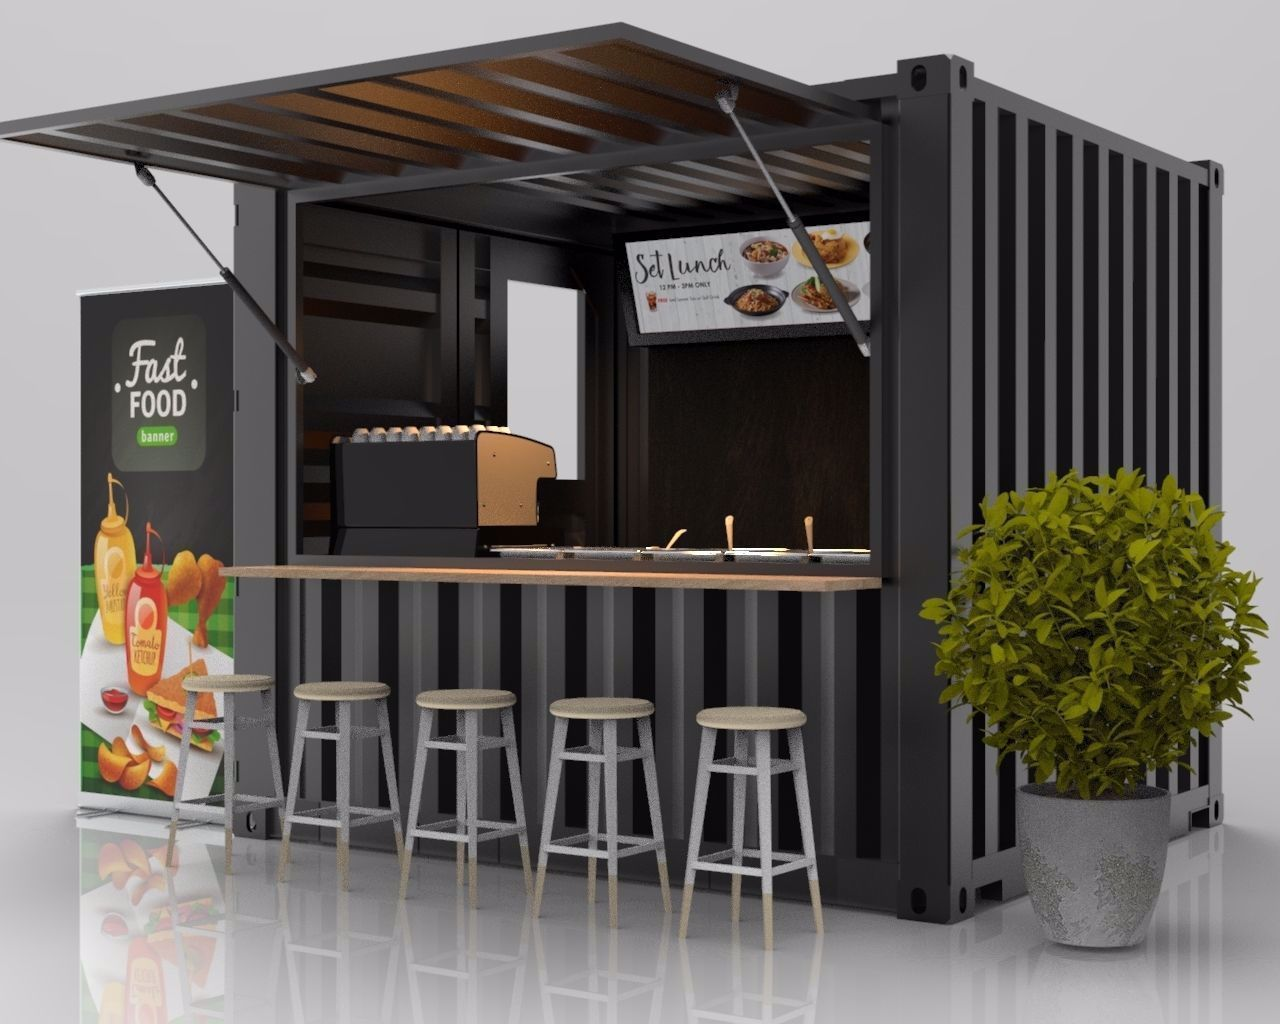 3d 10ft Container Kiosk Cgtrader In 2020 Cafe Shop Design Container Cafe Container Coffee Shop